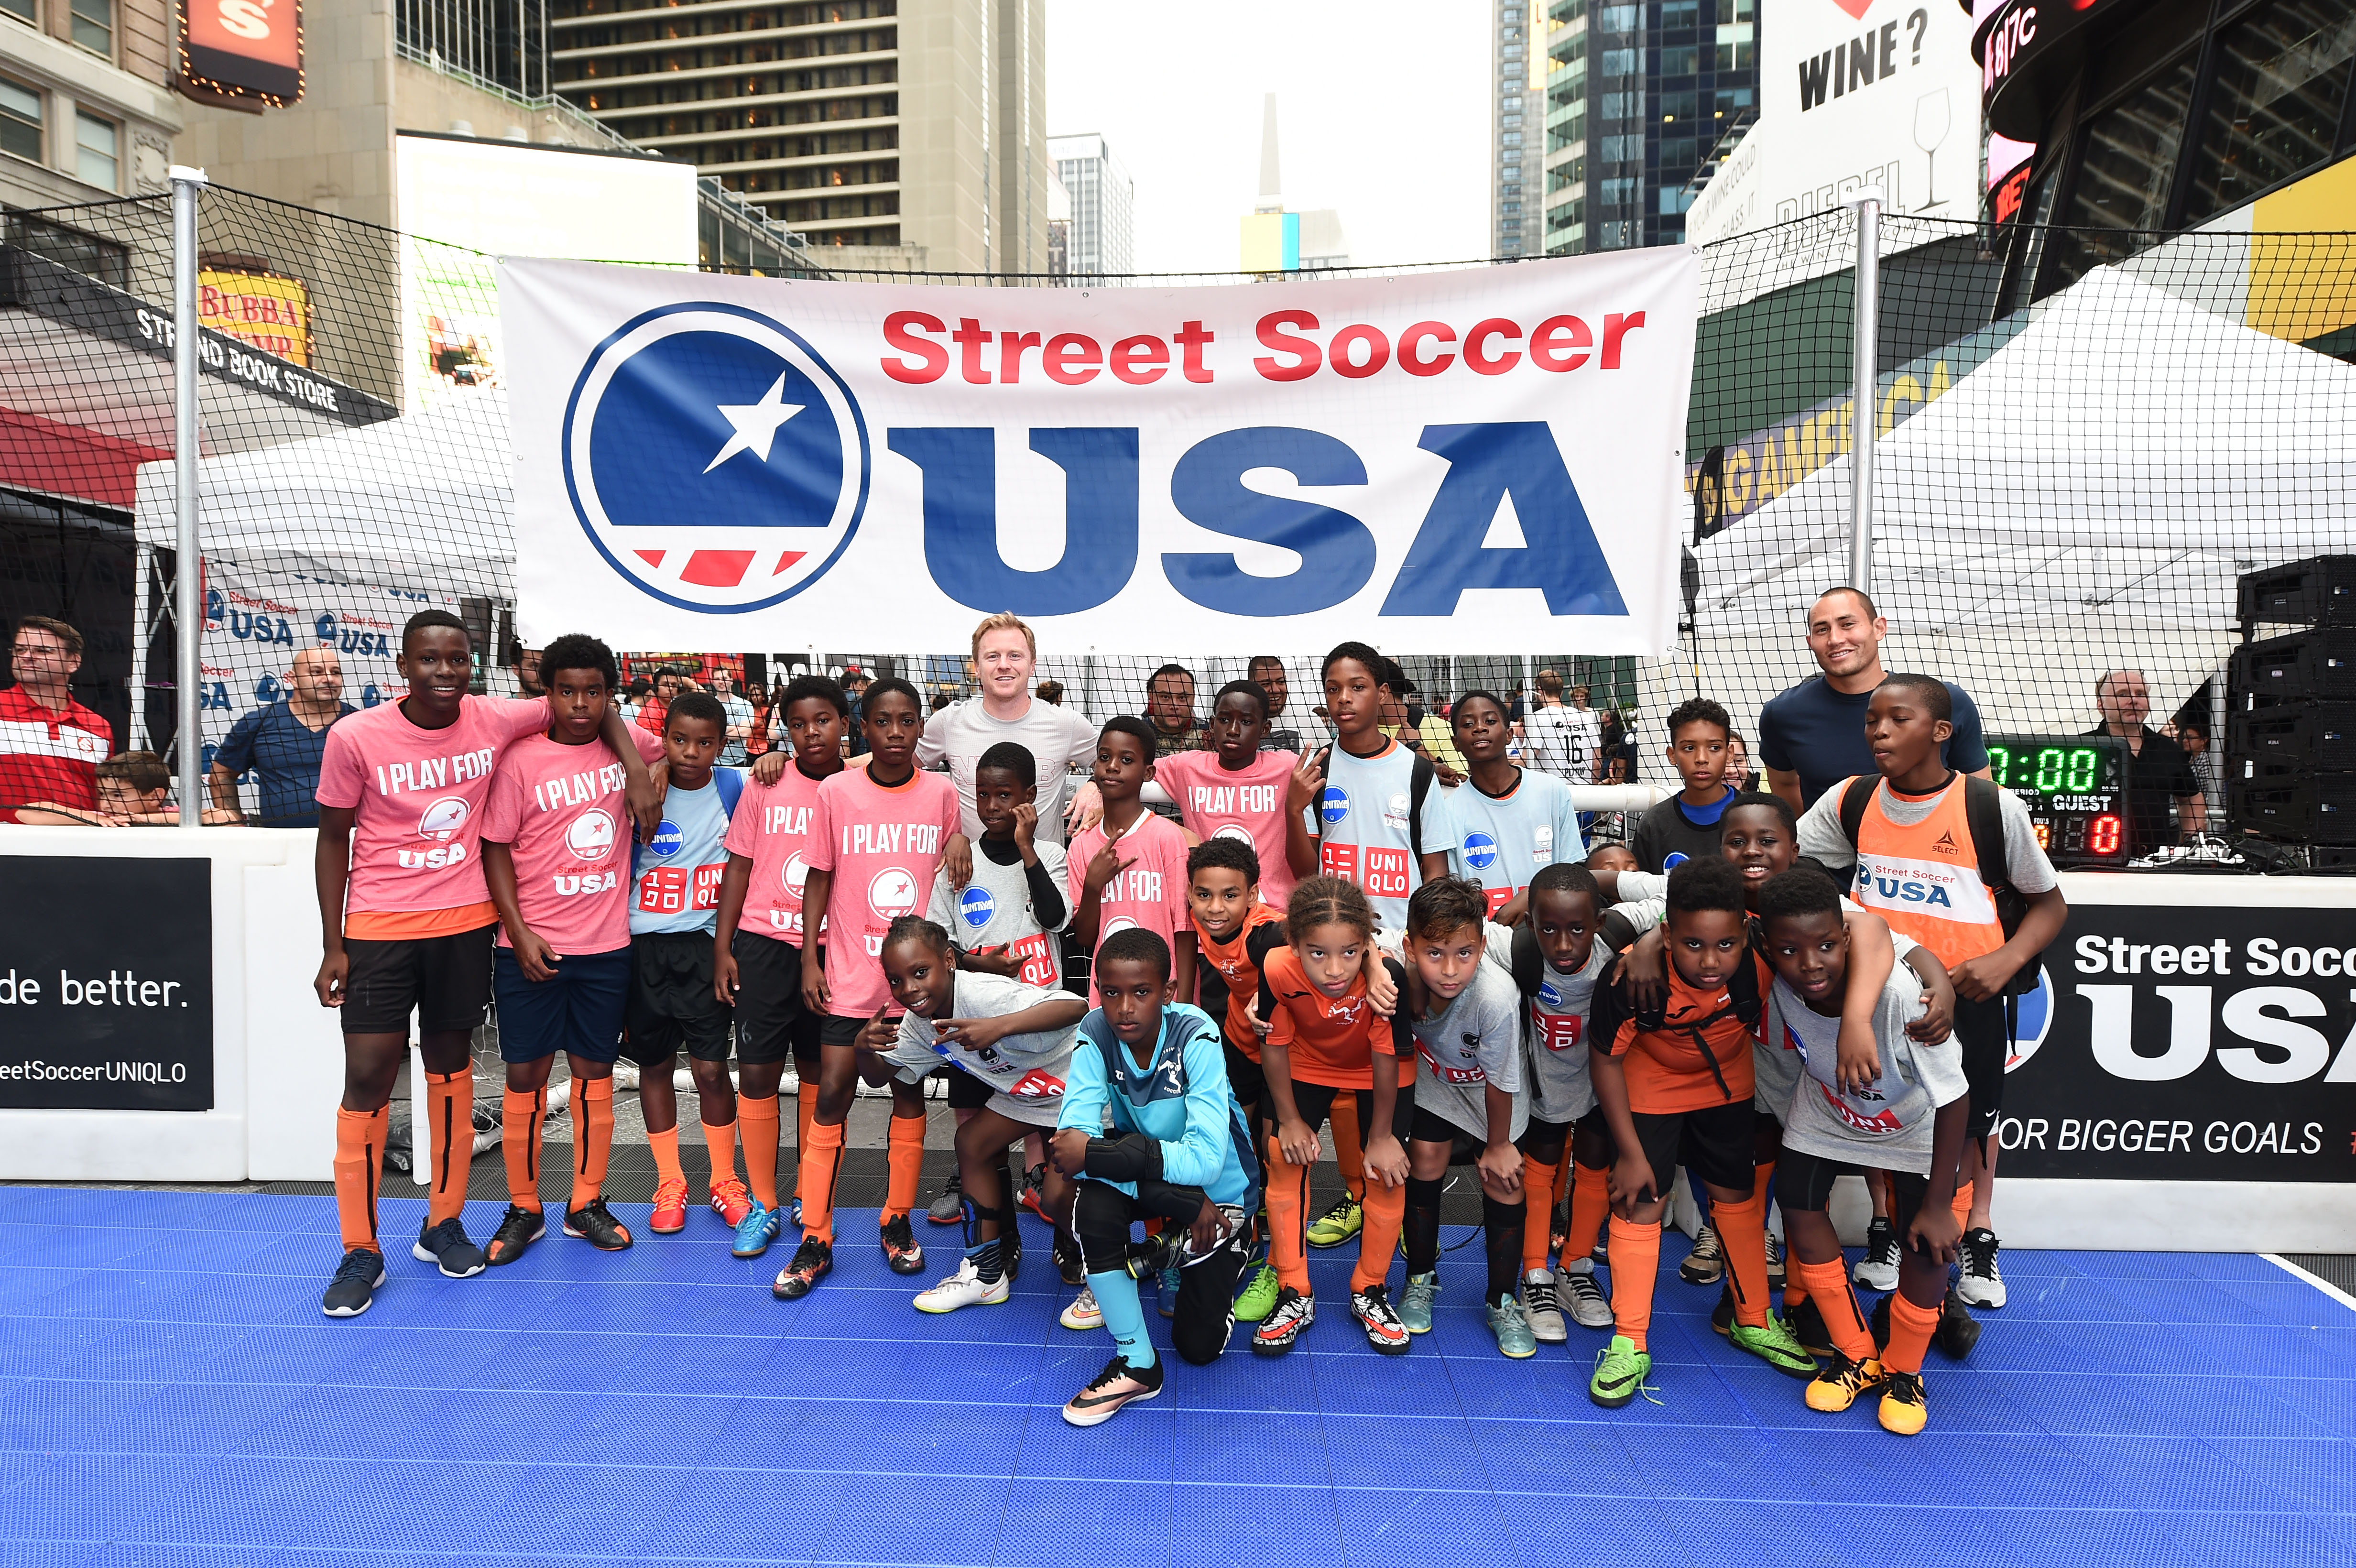 EVENT: Street Soccer USA 4th Annual NYC Times Square Soccer Tournament